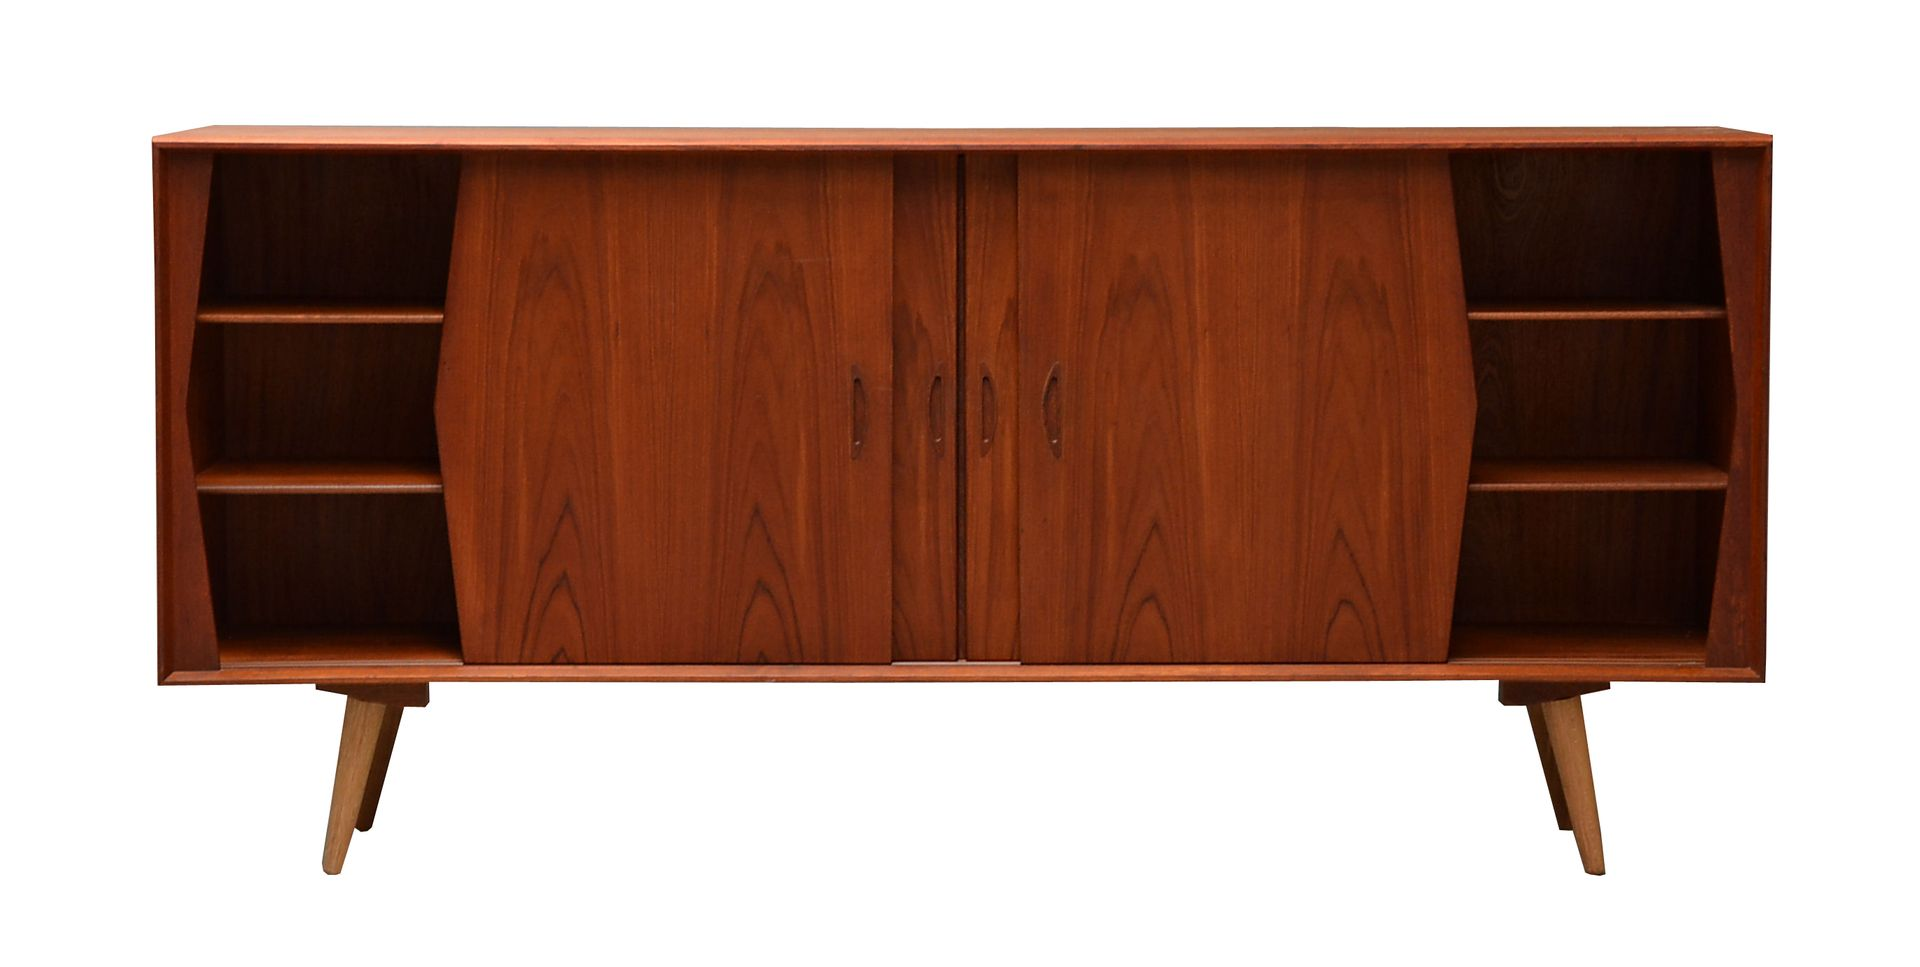 hohes d nisches teak sideboard 1960er bei pamono kaufen. Black Bedroom Furniture Sets. Home Design Ideas